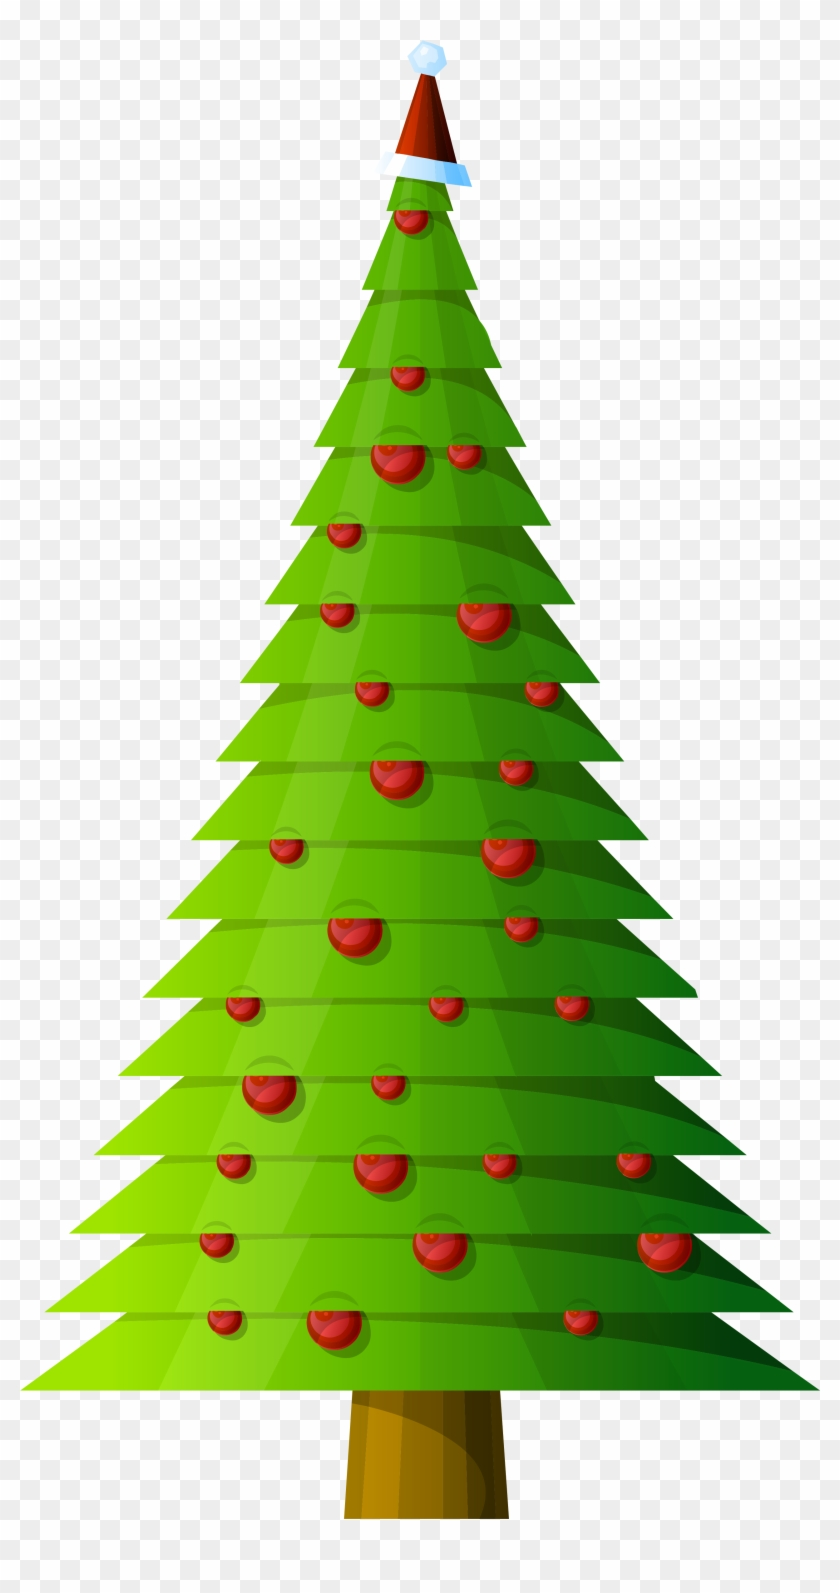 christmas tree modern style transparent png clipart clip art tall skinny christmas tree - Christmas Tree Transparent